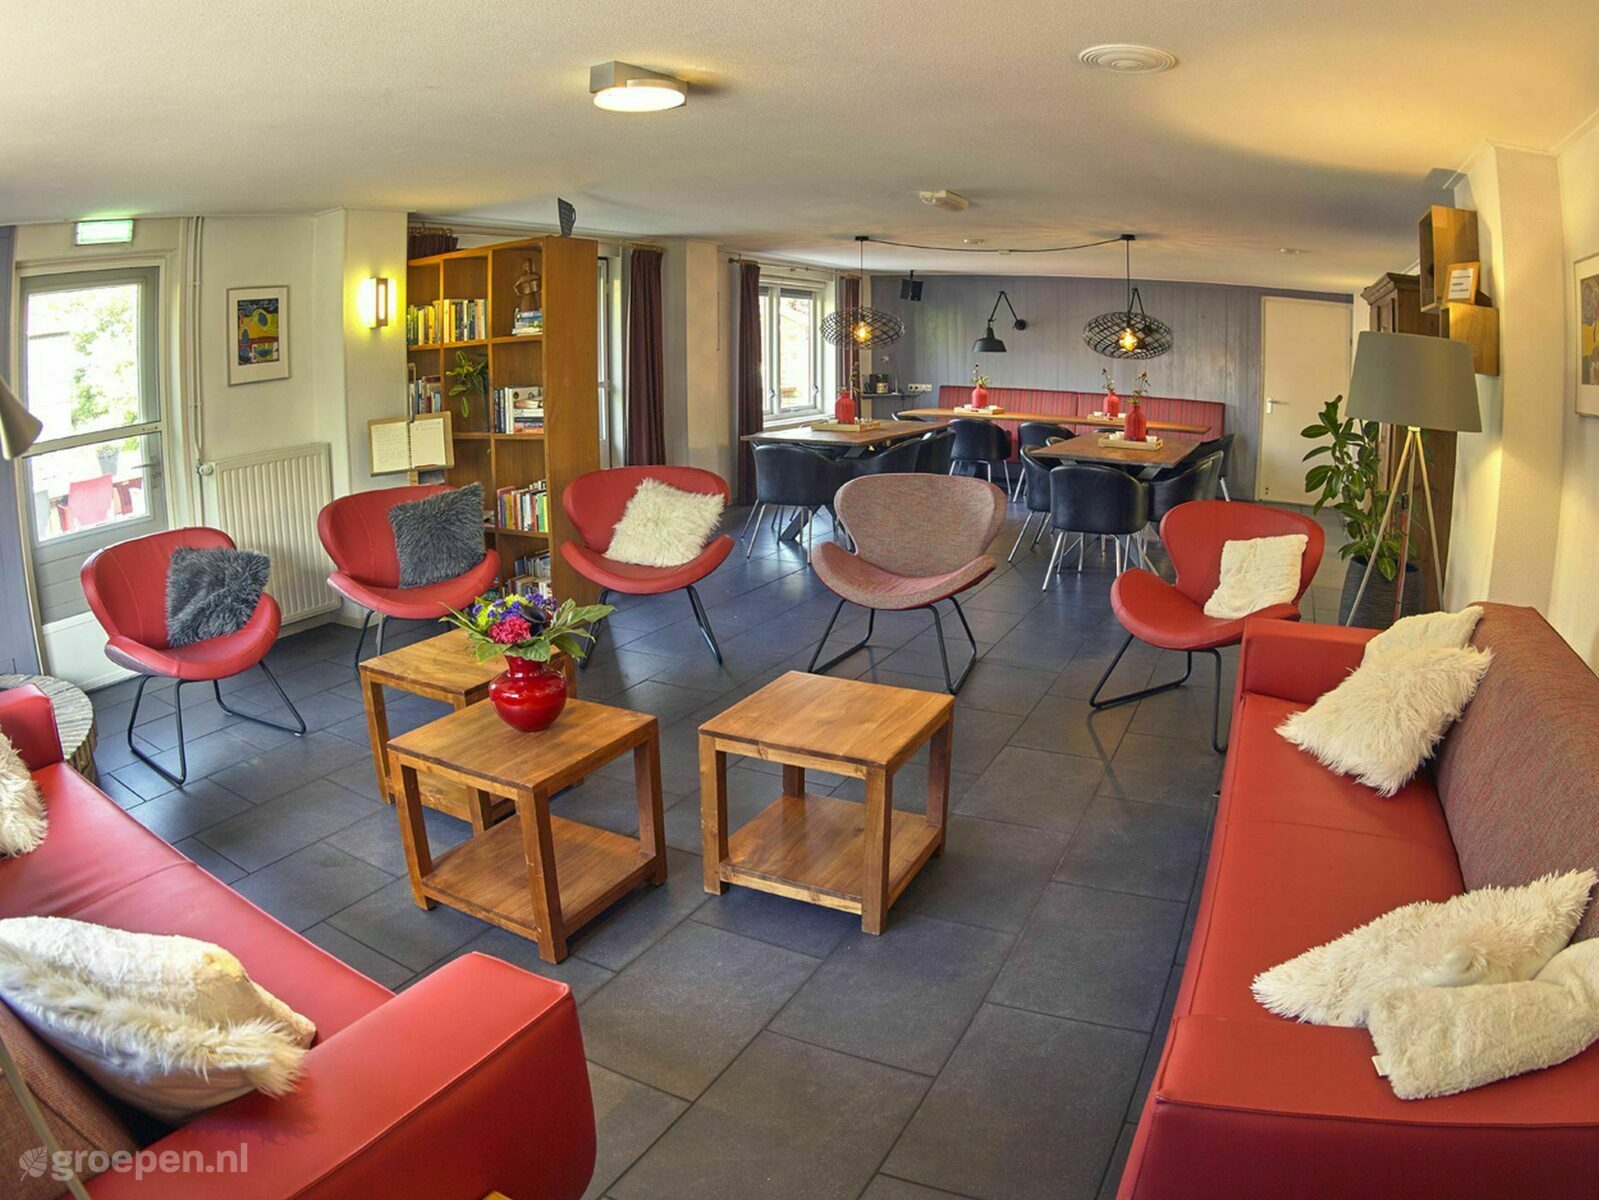 Group accommodation Munnekeburen